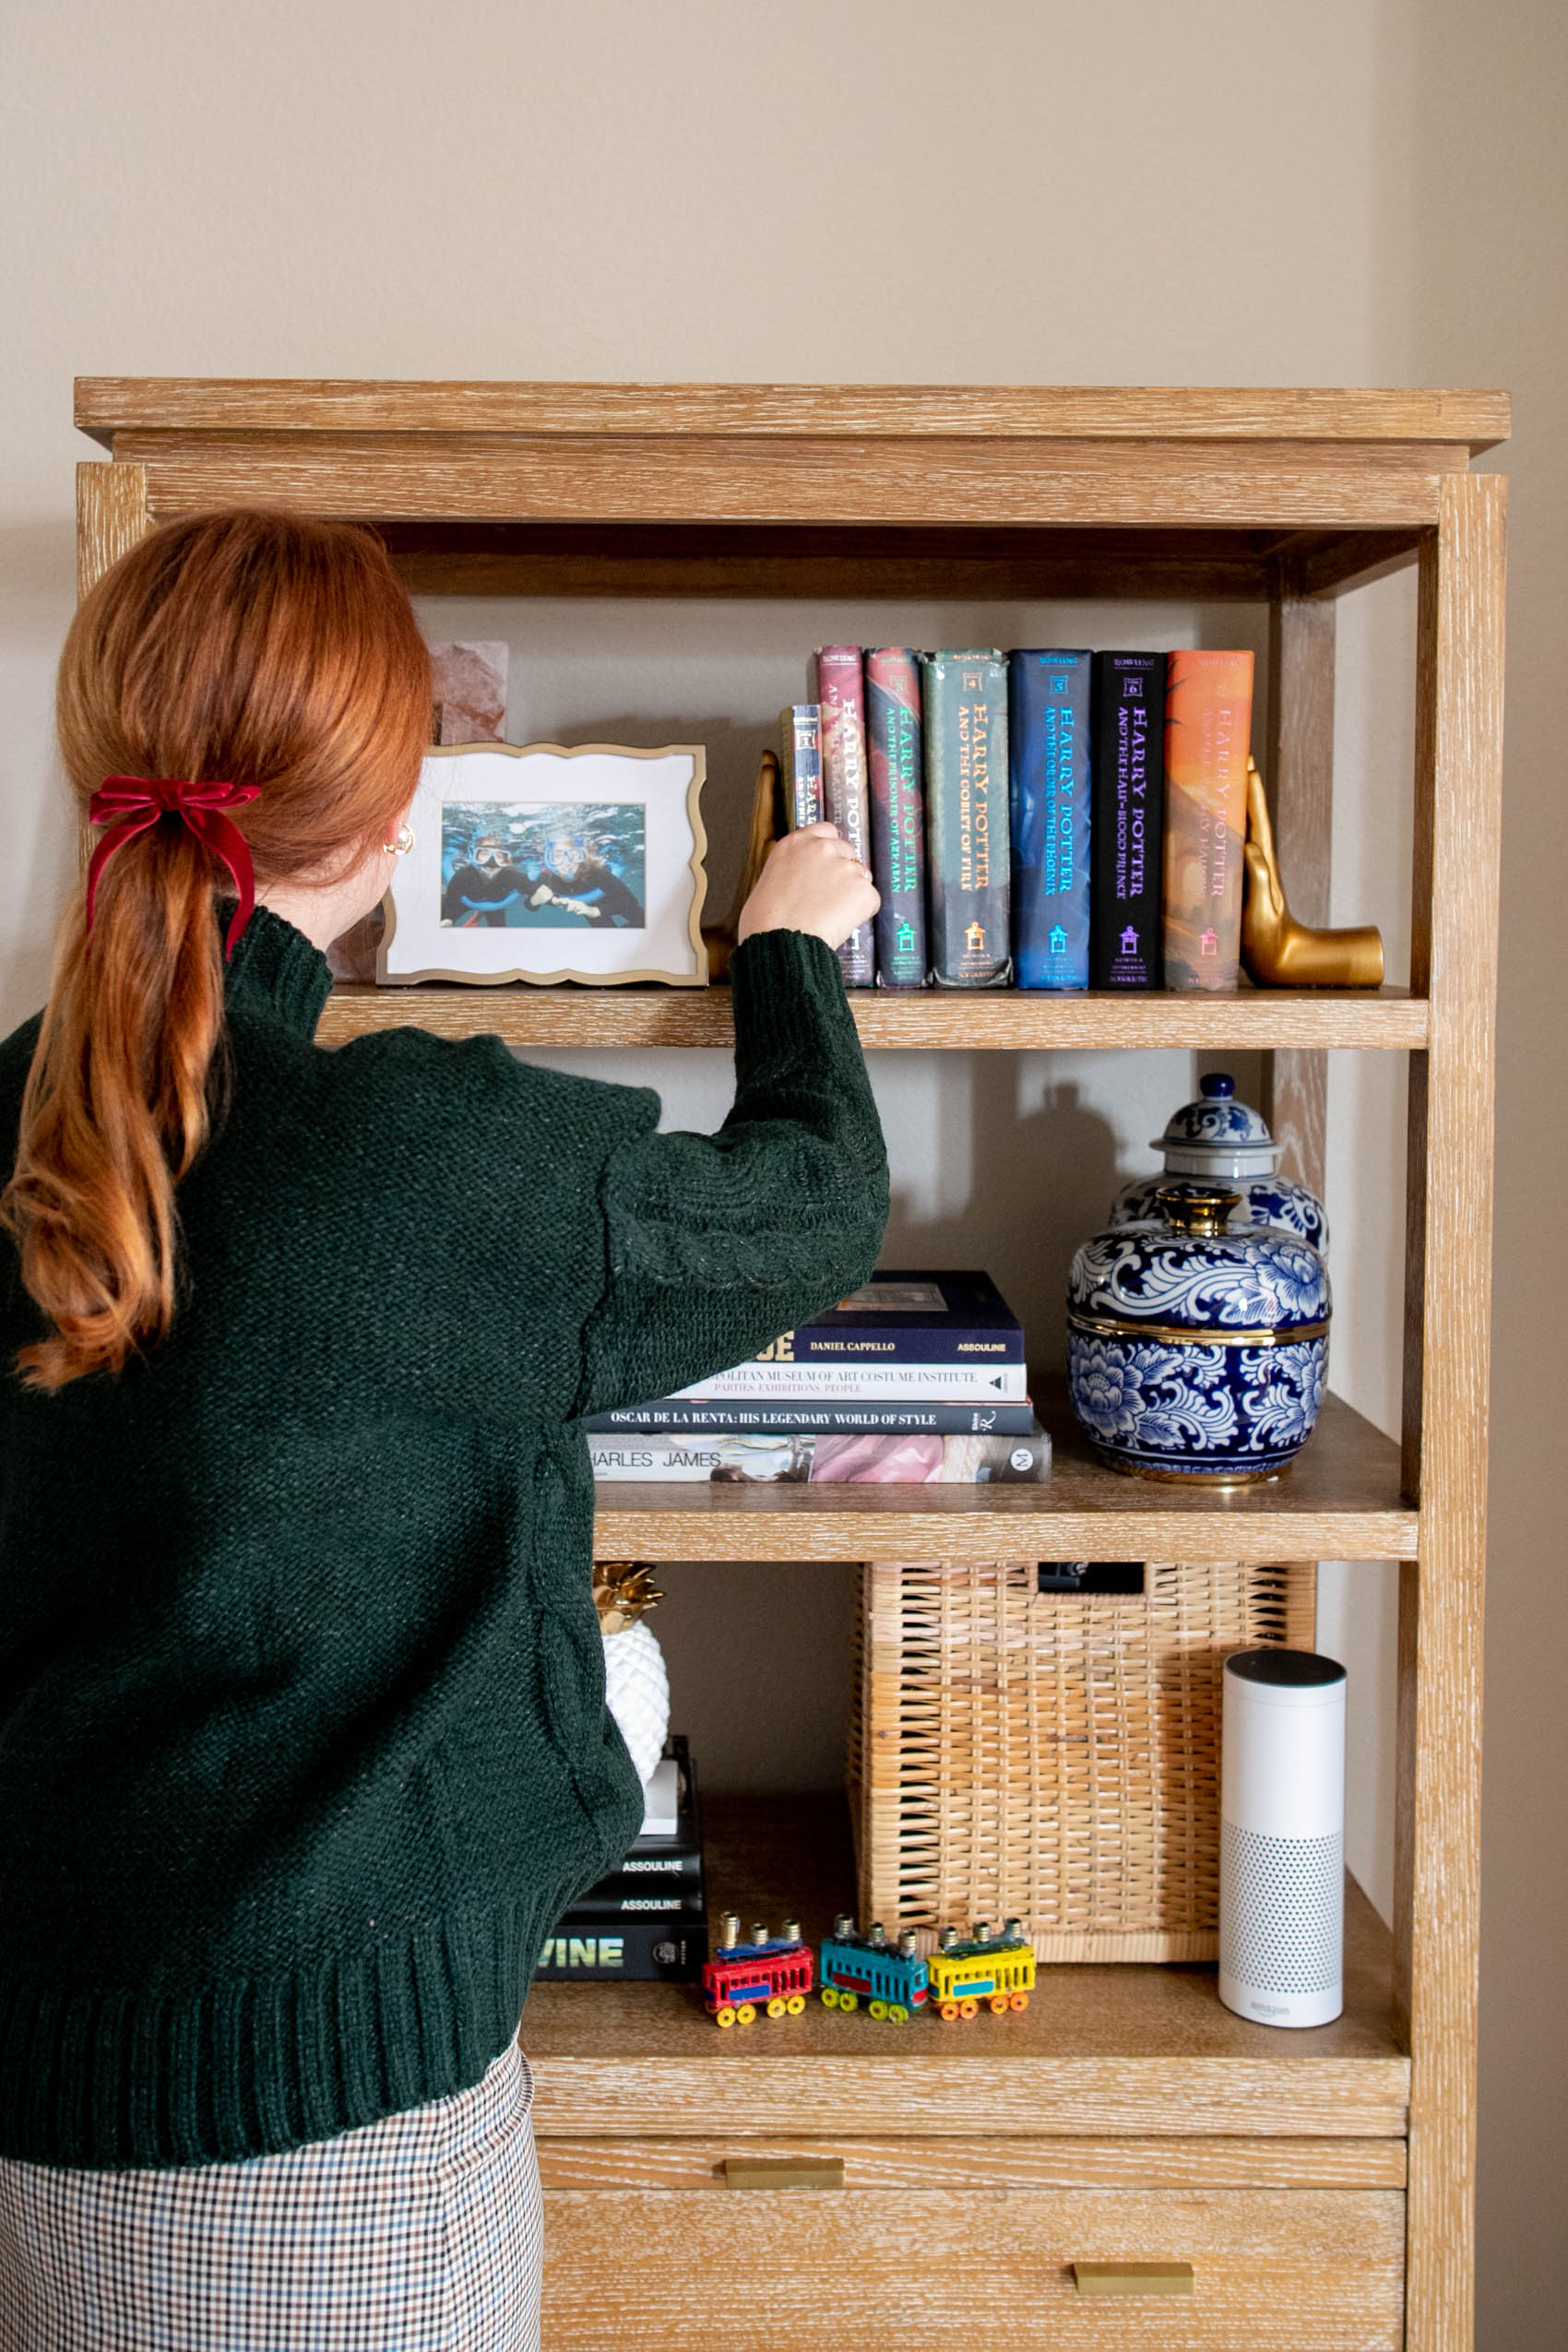 Girl with red hair and red bow in her hair wearing a green cable knit sweater styles bookshelf as example outfit from a winter capsule wardrobe